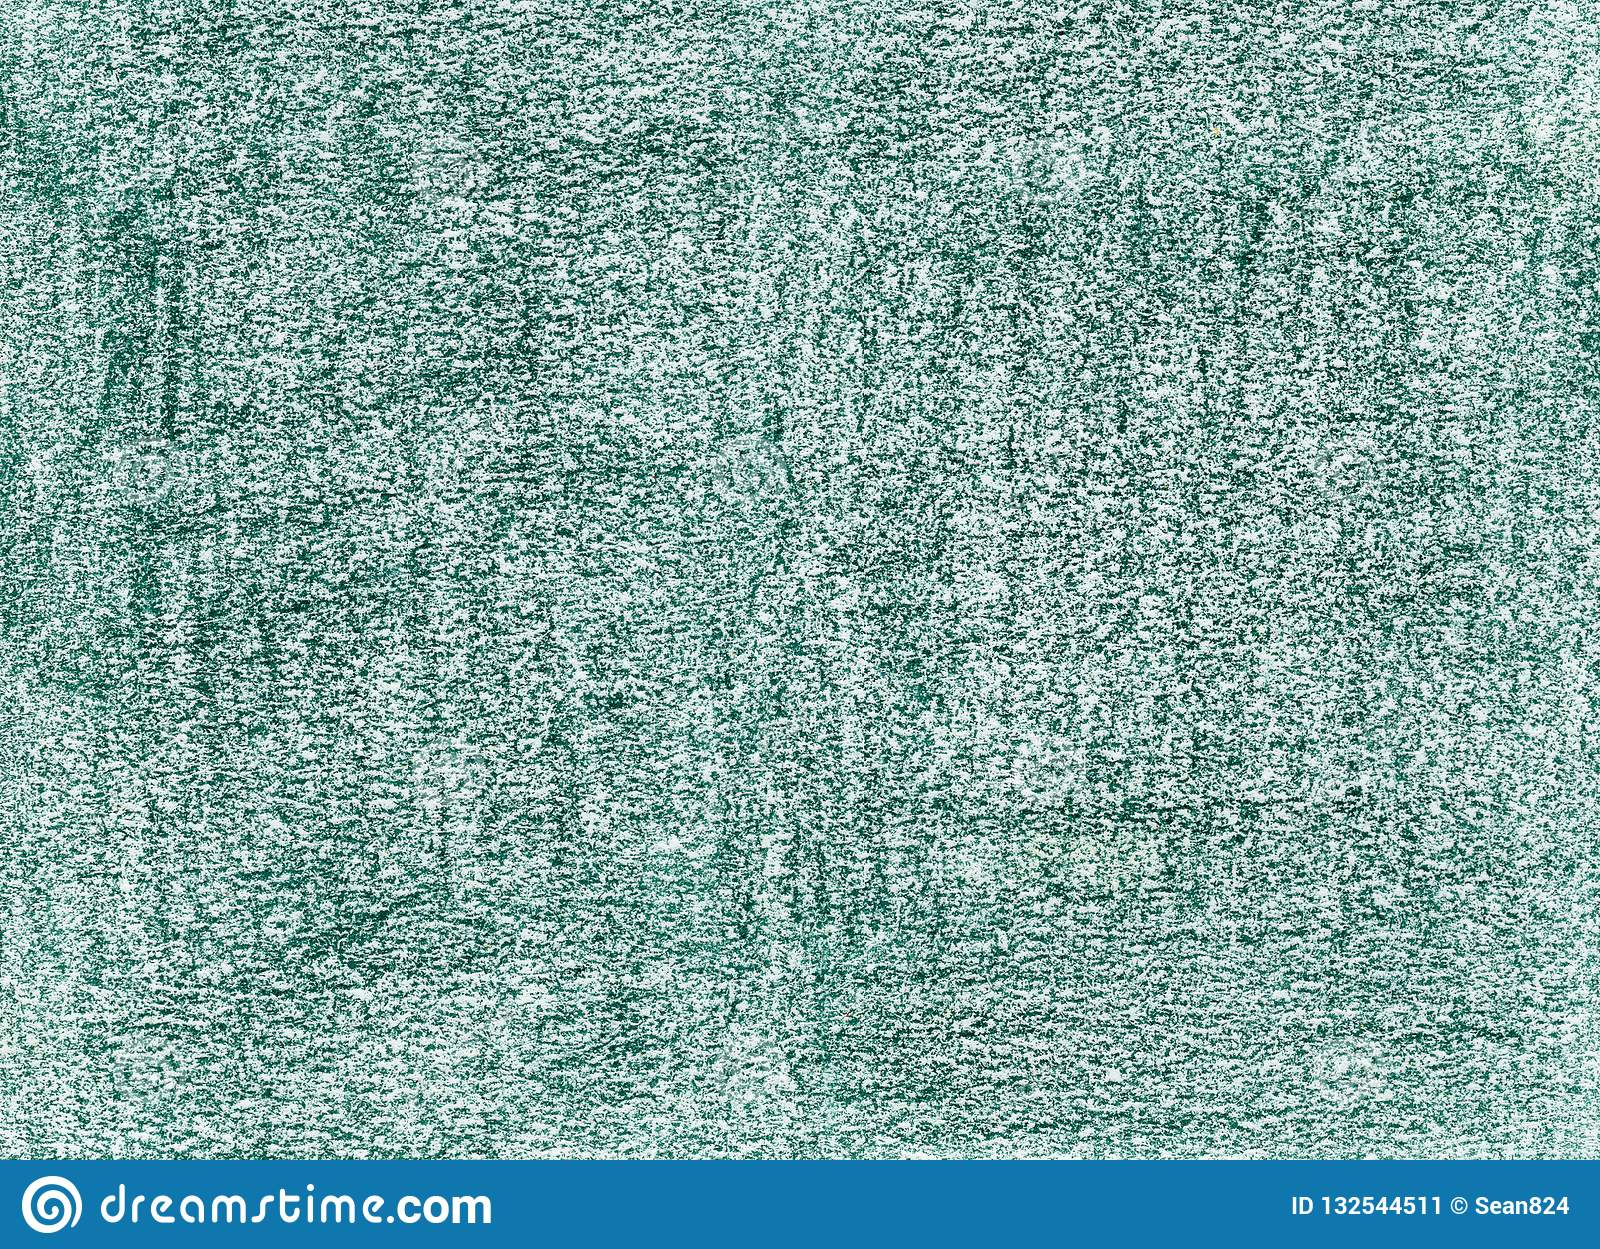 Colored pencil background stock image. Image of texture ...